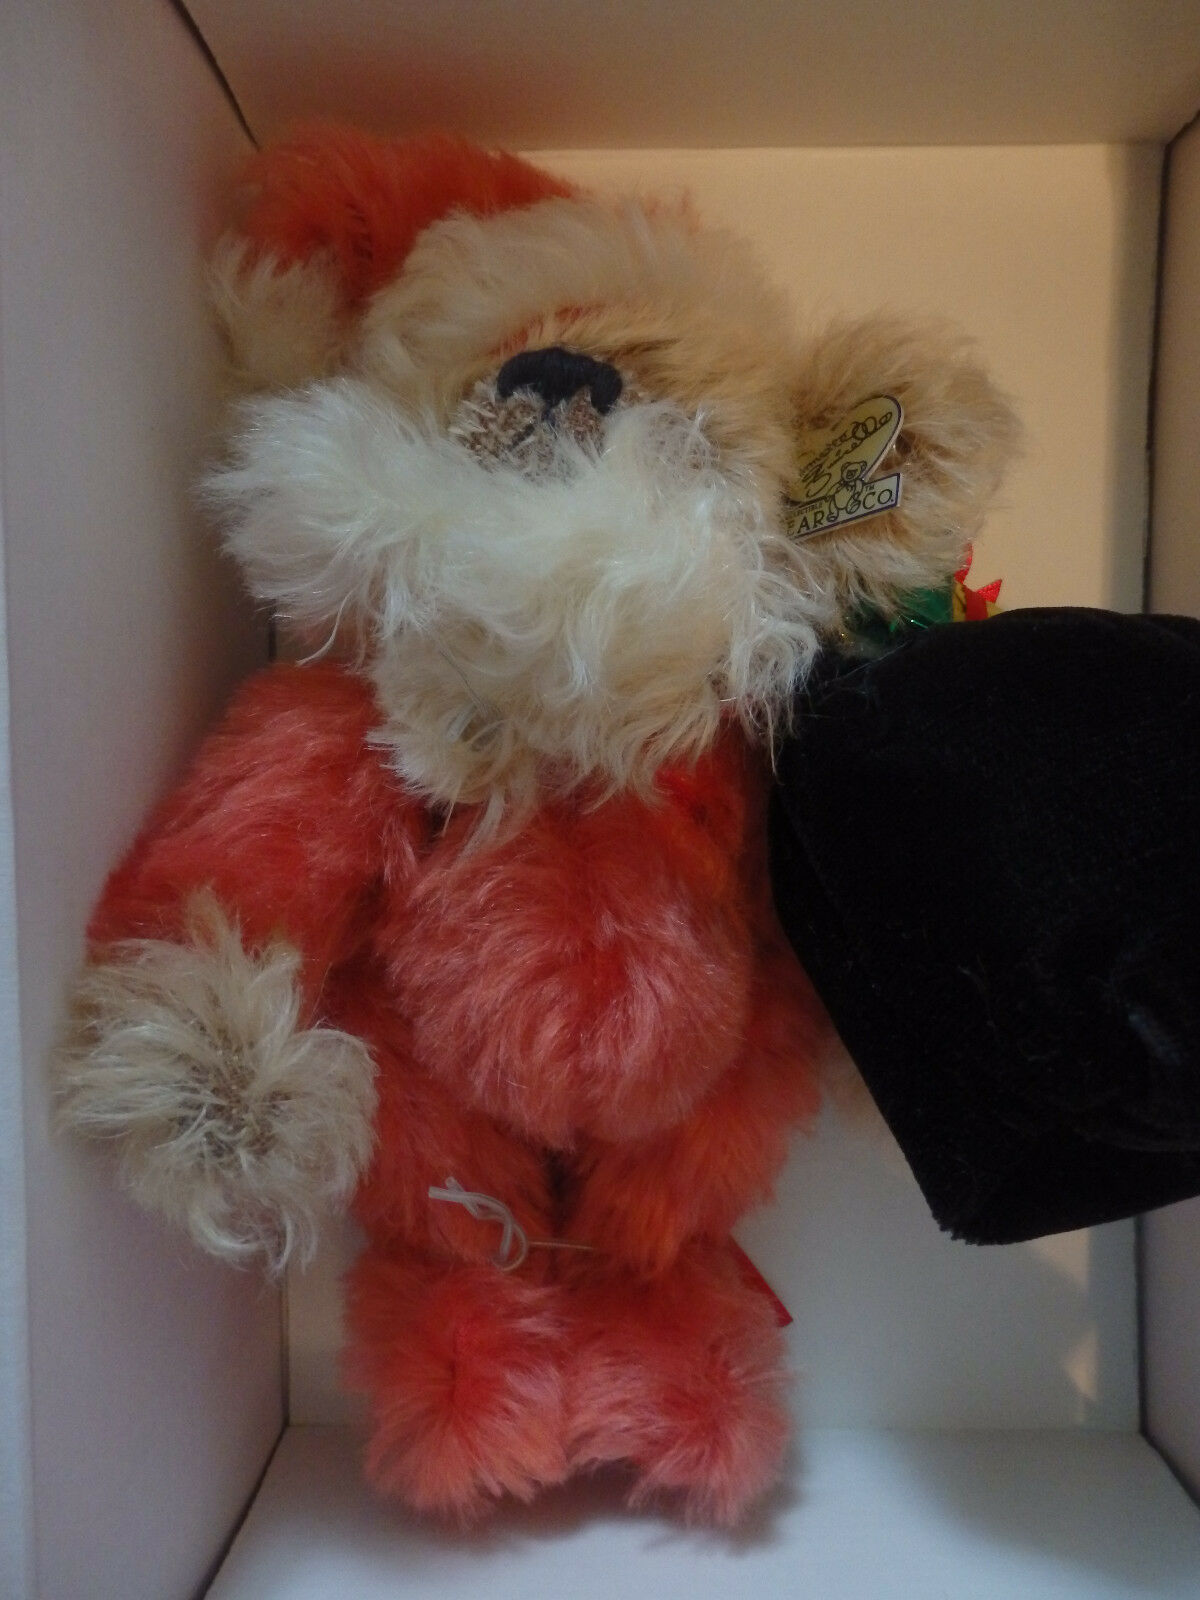 Annette Funicello Funicello Funicello Mohair Bear 'Bear Claus' 8  NIB  Missing Certificate e8663b